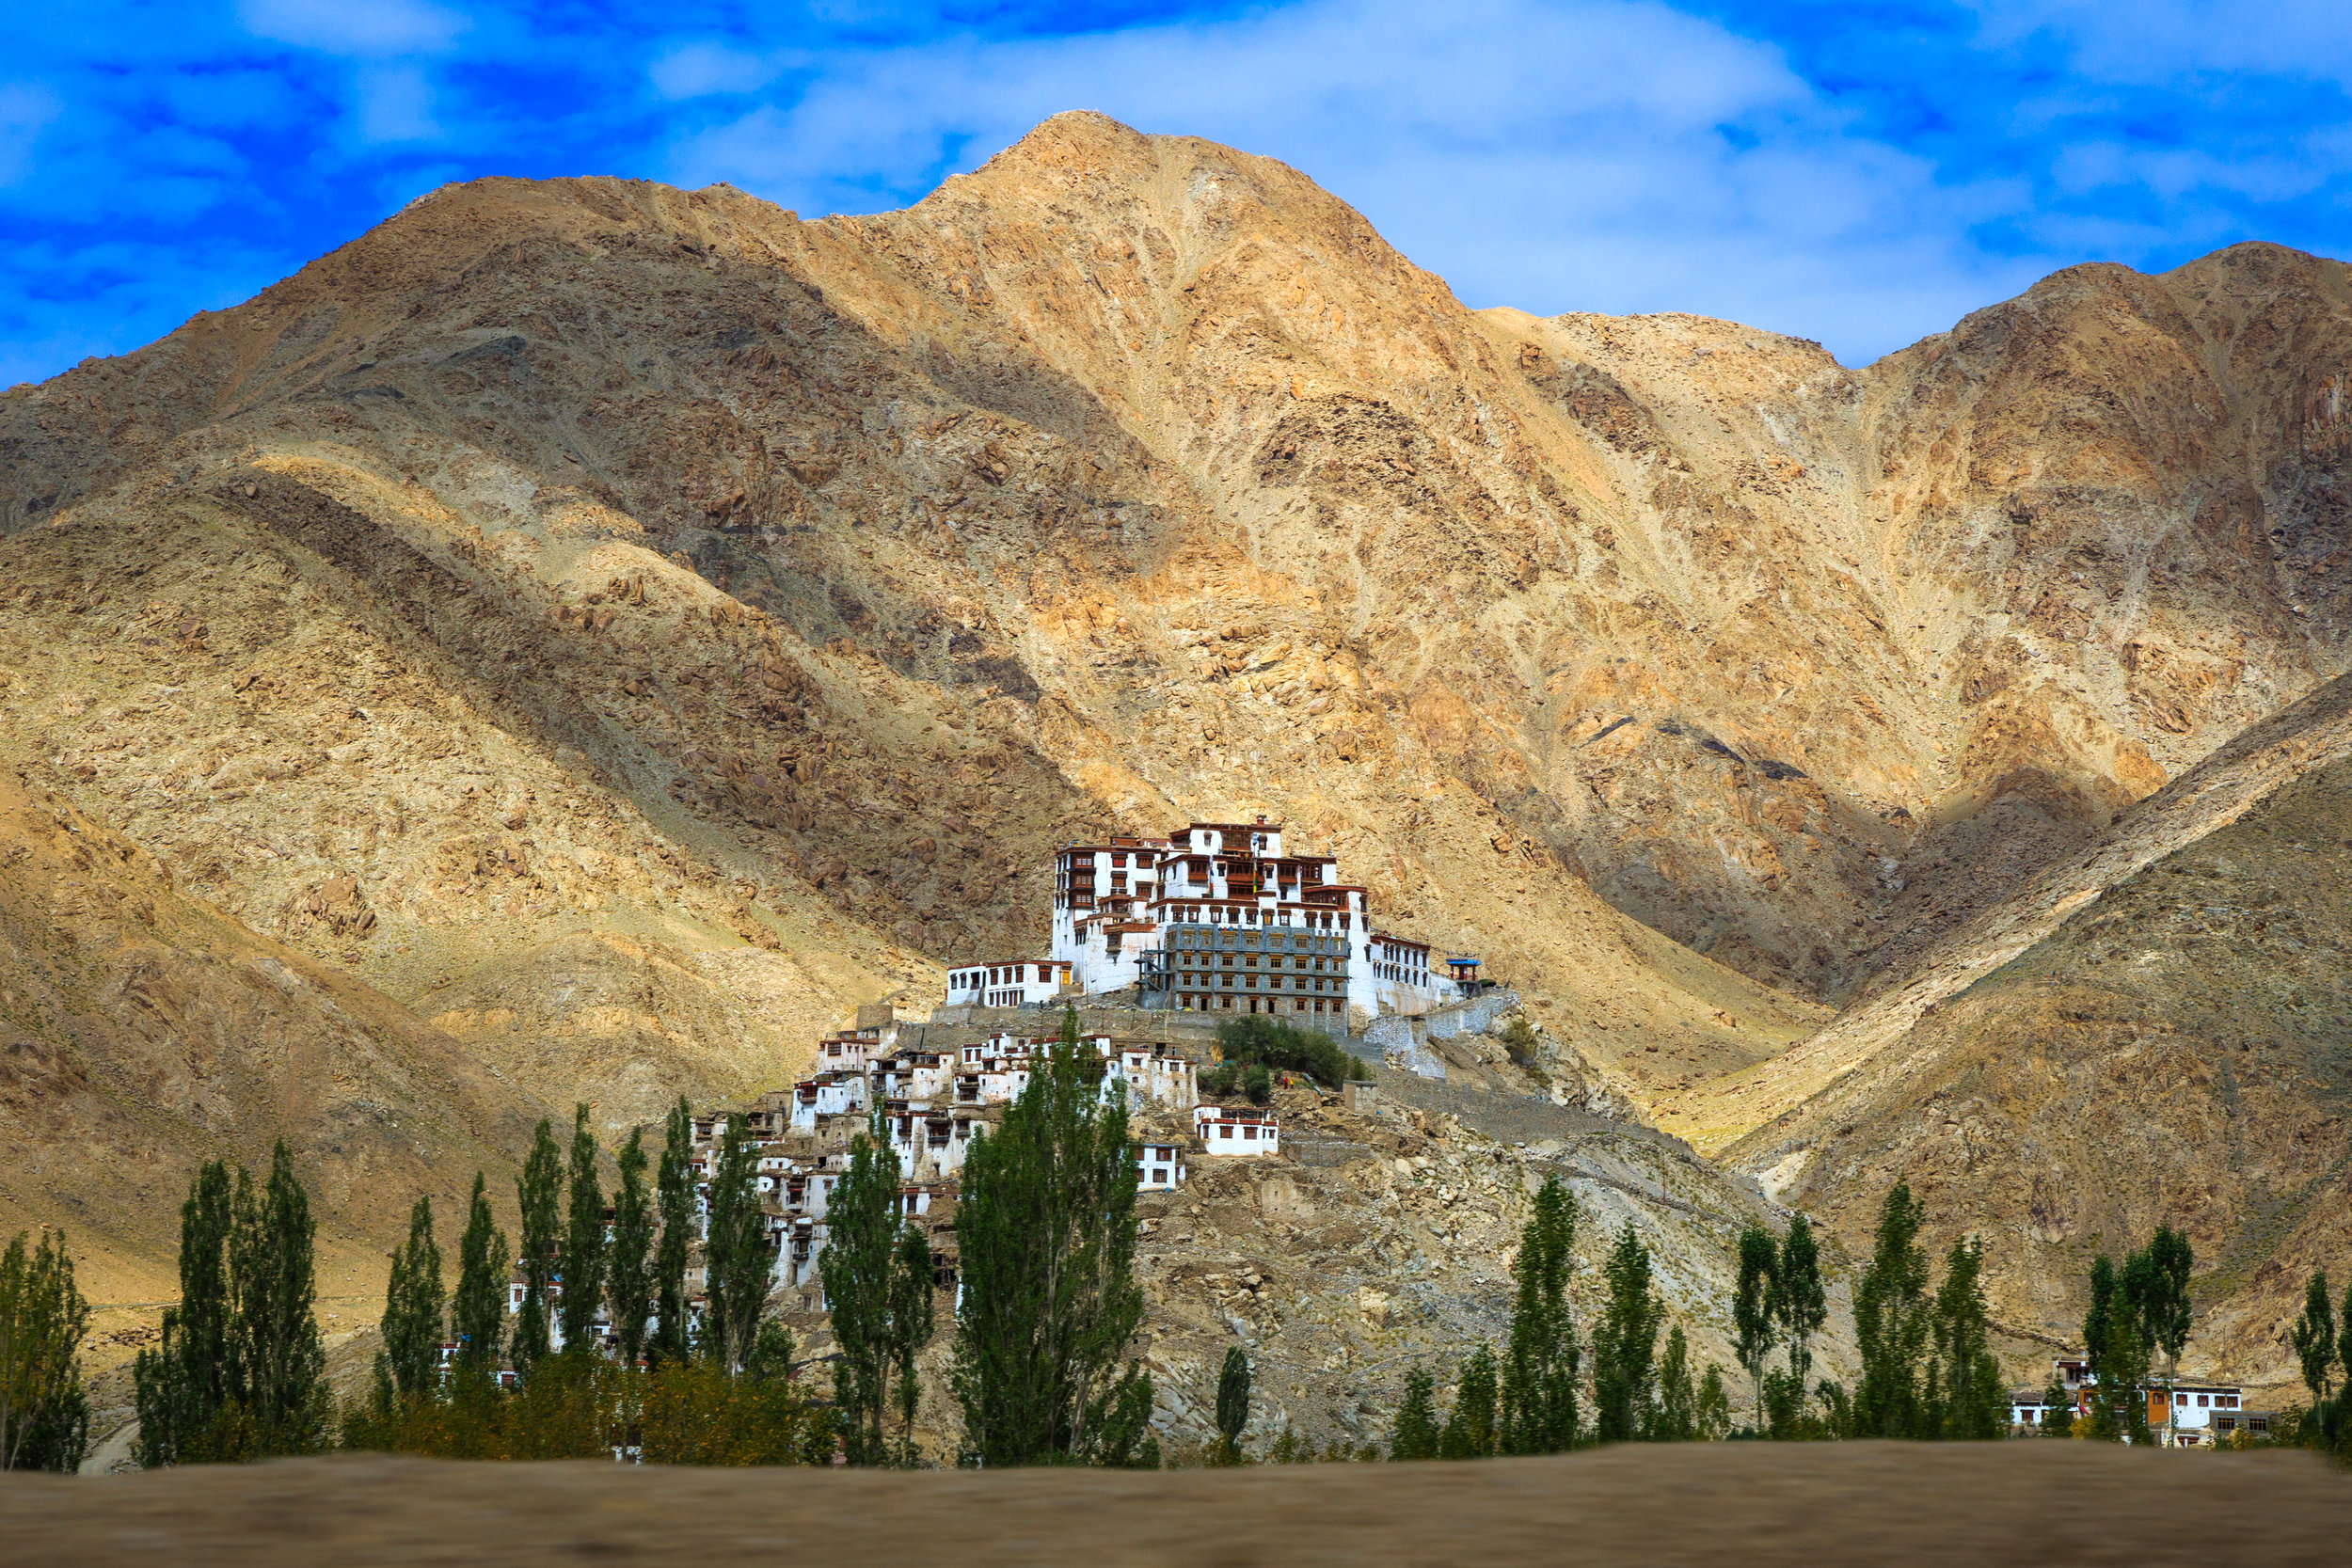 Thiksey Monastery complex in Ladakh - India